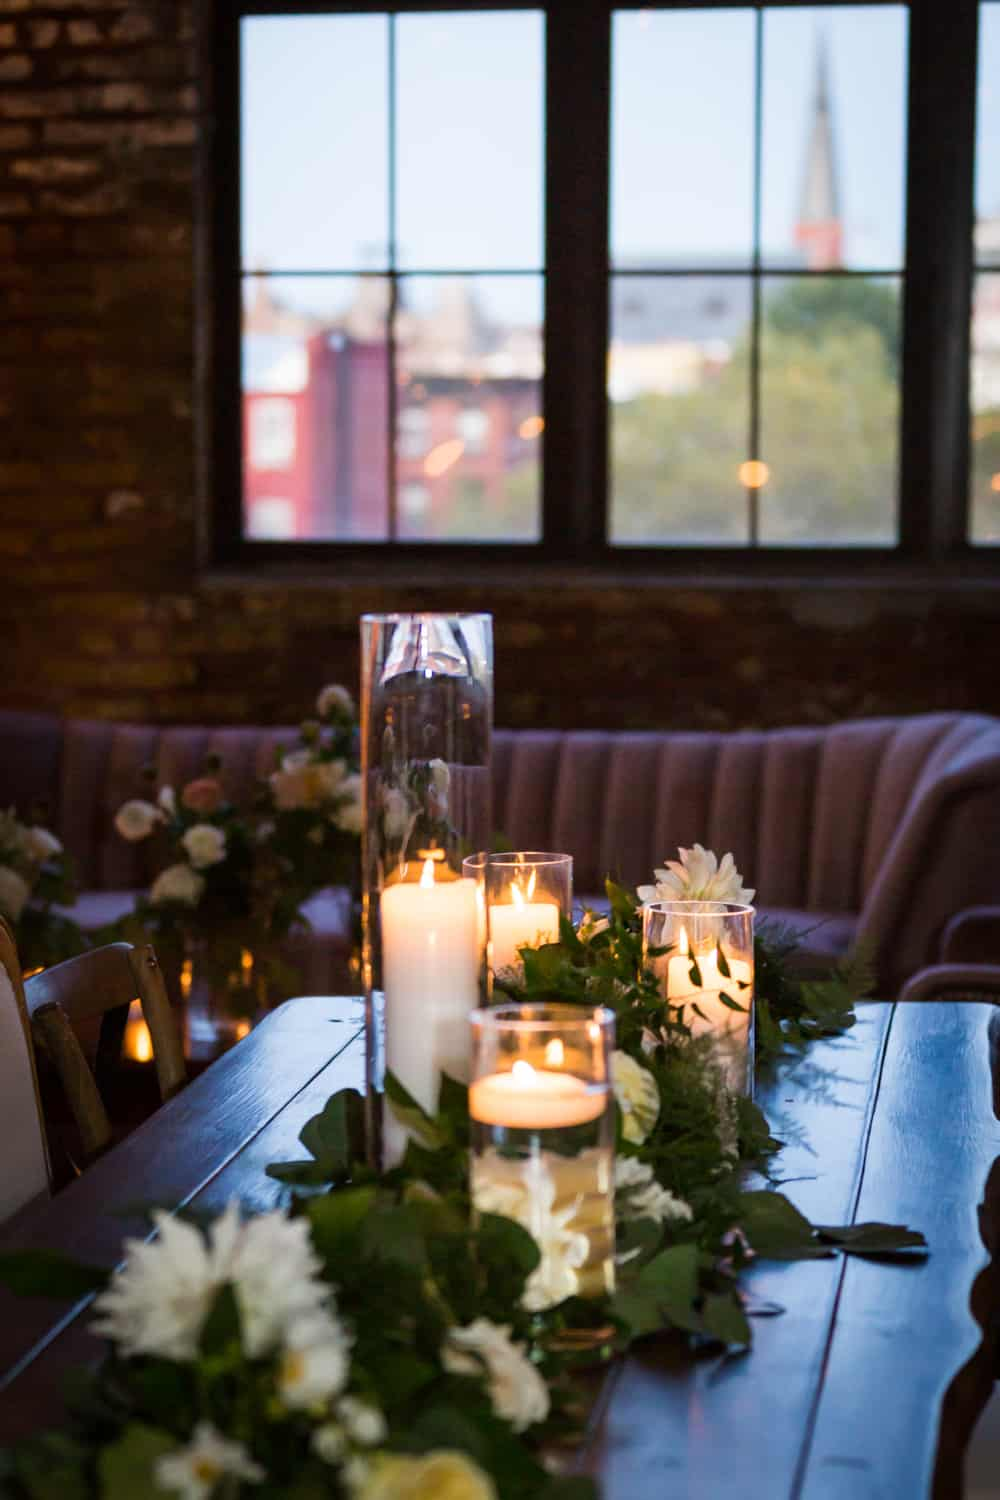 Table with lit candles and flowers